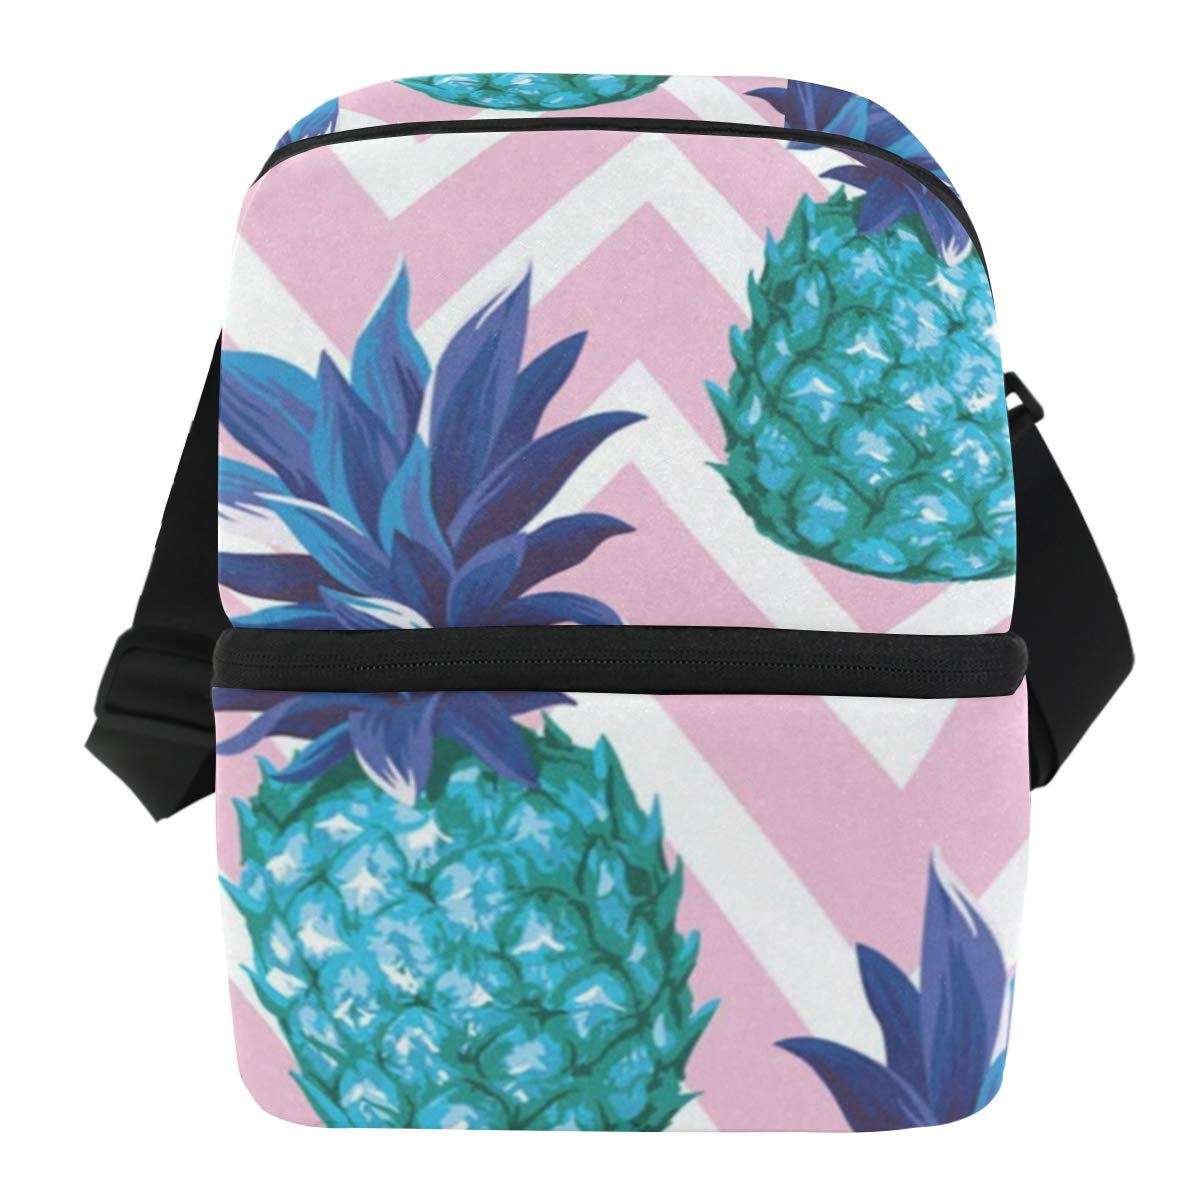 Lunch Bag Summer Pineapple Insulated Cooler Bag Womens Leakproof refrigerator Box Zipper Tote Bags for Fishing